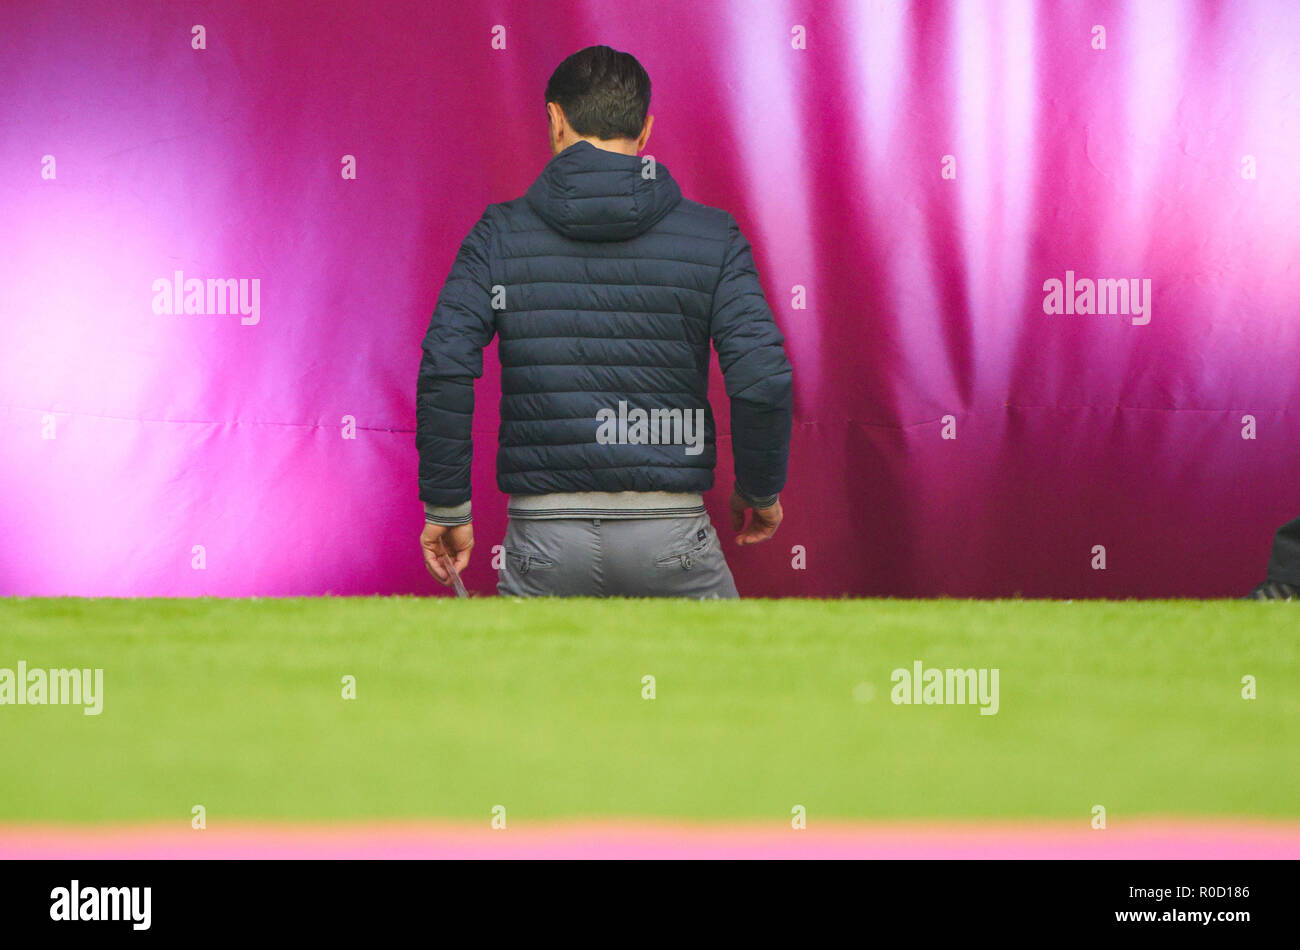 Munich, Germany. 3rd November, 2018. FC Bayern Soccer, November 03, 2018 Head coach Niko Kovac (FCB) leaves the Stadium, half-time period, break, sad, disappointed, angry, Emotions, disappointment, frustration, frustrated, sadness, desperate, despair,  FC BAYERN MUNICH - SC FREIBURG 1-1  - DFL REGULATIONS PROHIBIT ANY USE OF PHOTOGRAPHS as IMAGE SEQUENCES and/or QUASI-VIDEO -  1.German Soccer League , Munich, November 03, 2018  Season 2018/2019, matchday 10, FCB © Peter Schatz / Alamy Live News - Stock Image